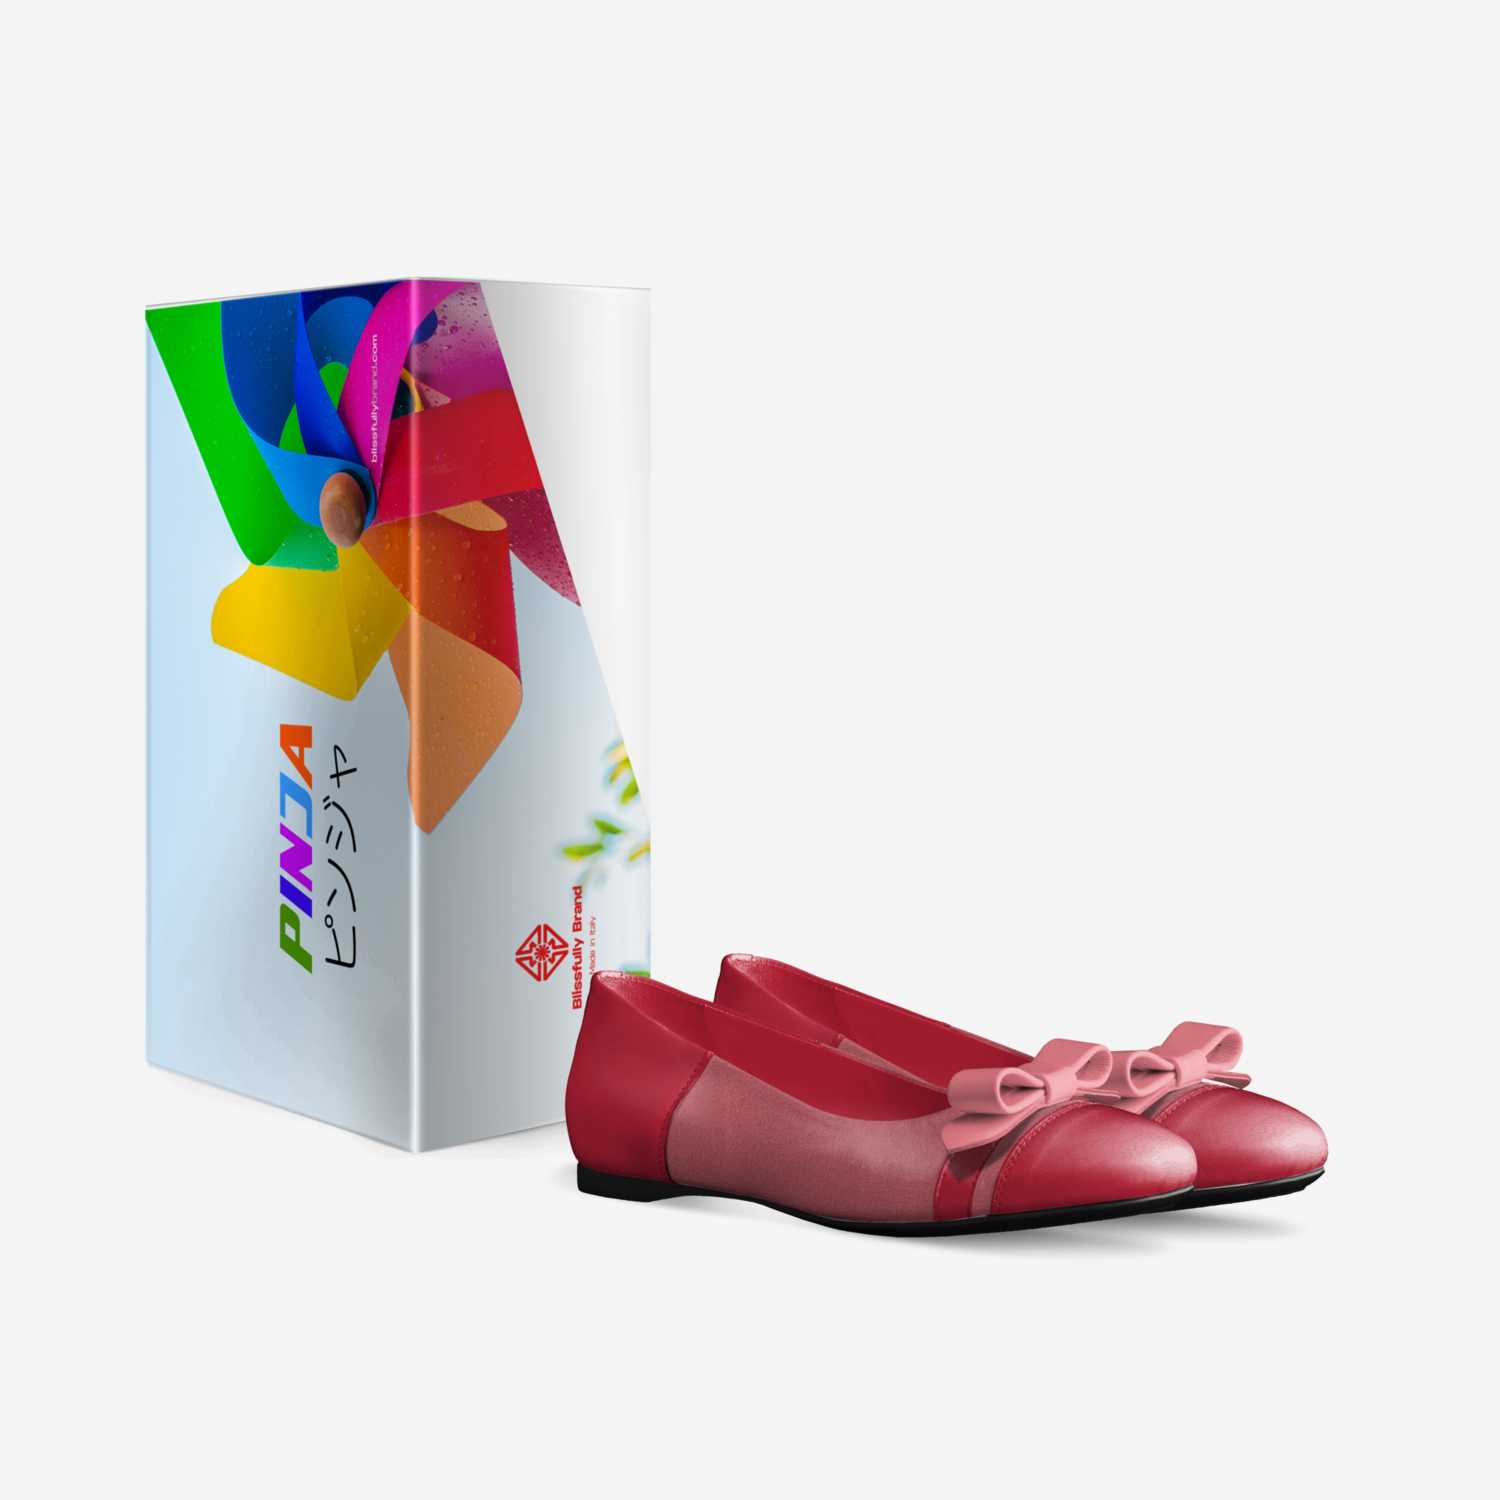 Pinja custom made in Italy shoes by Blissfully Brand | Box view